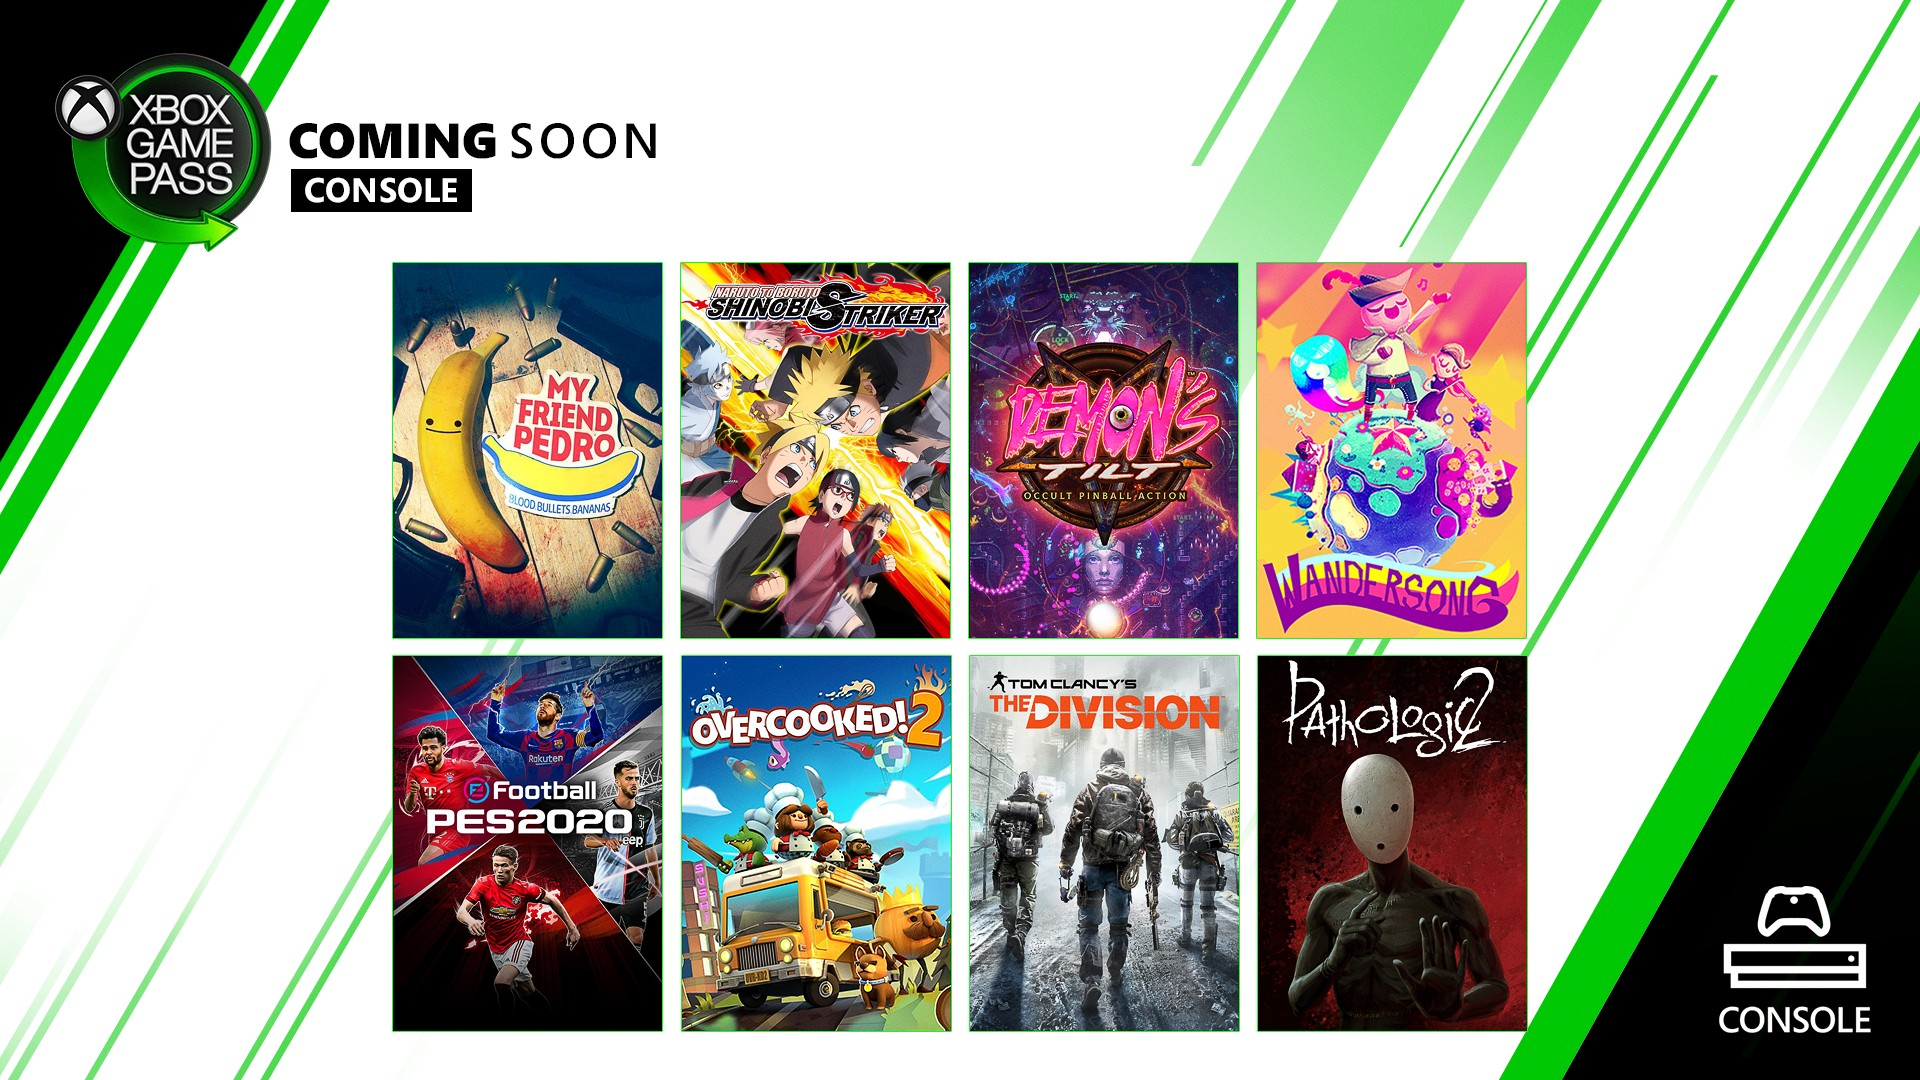 Xbox Game Pass - Console - December 2019